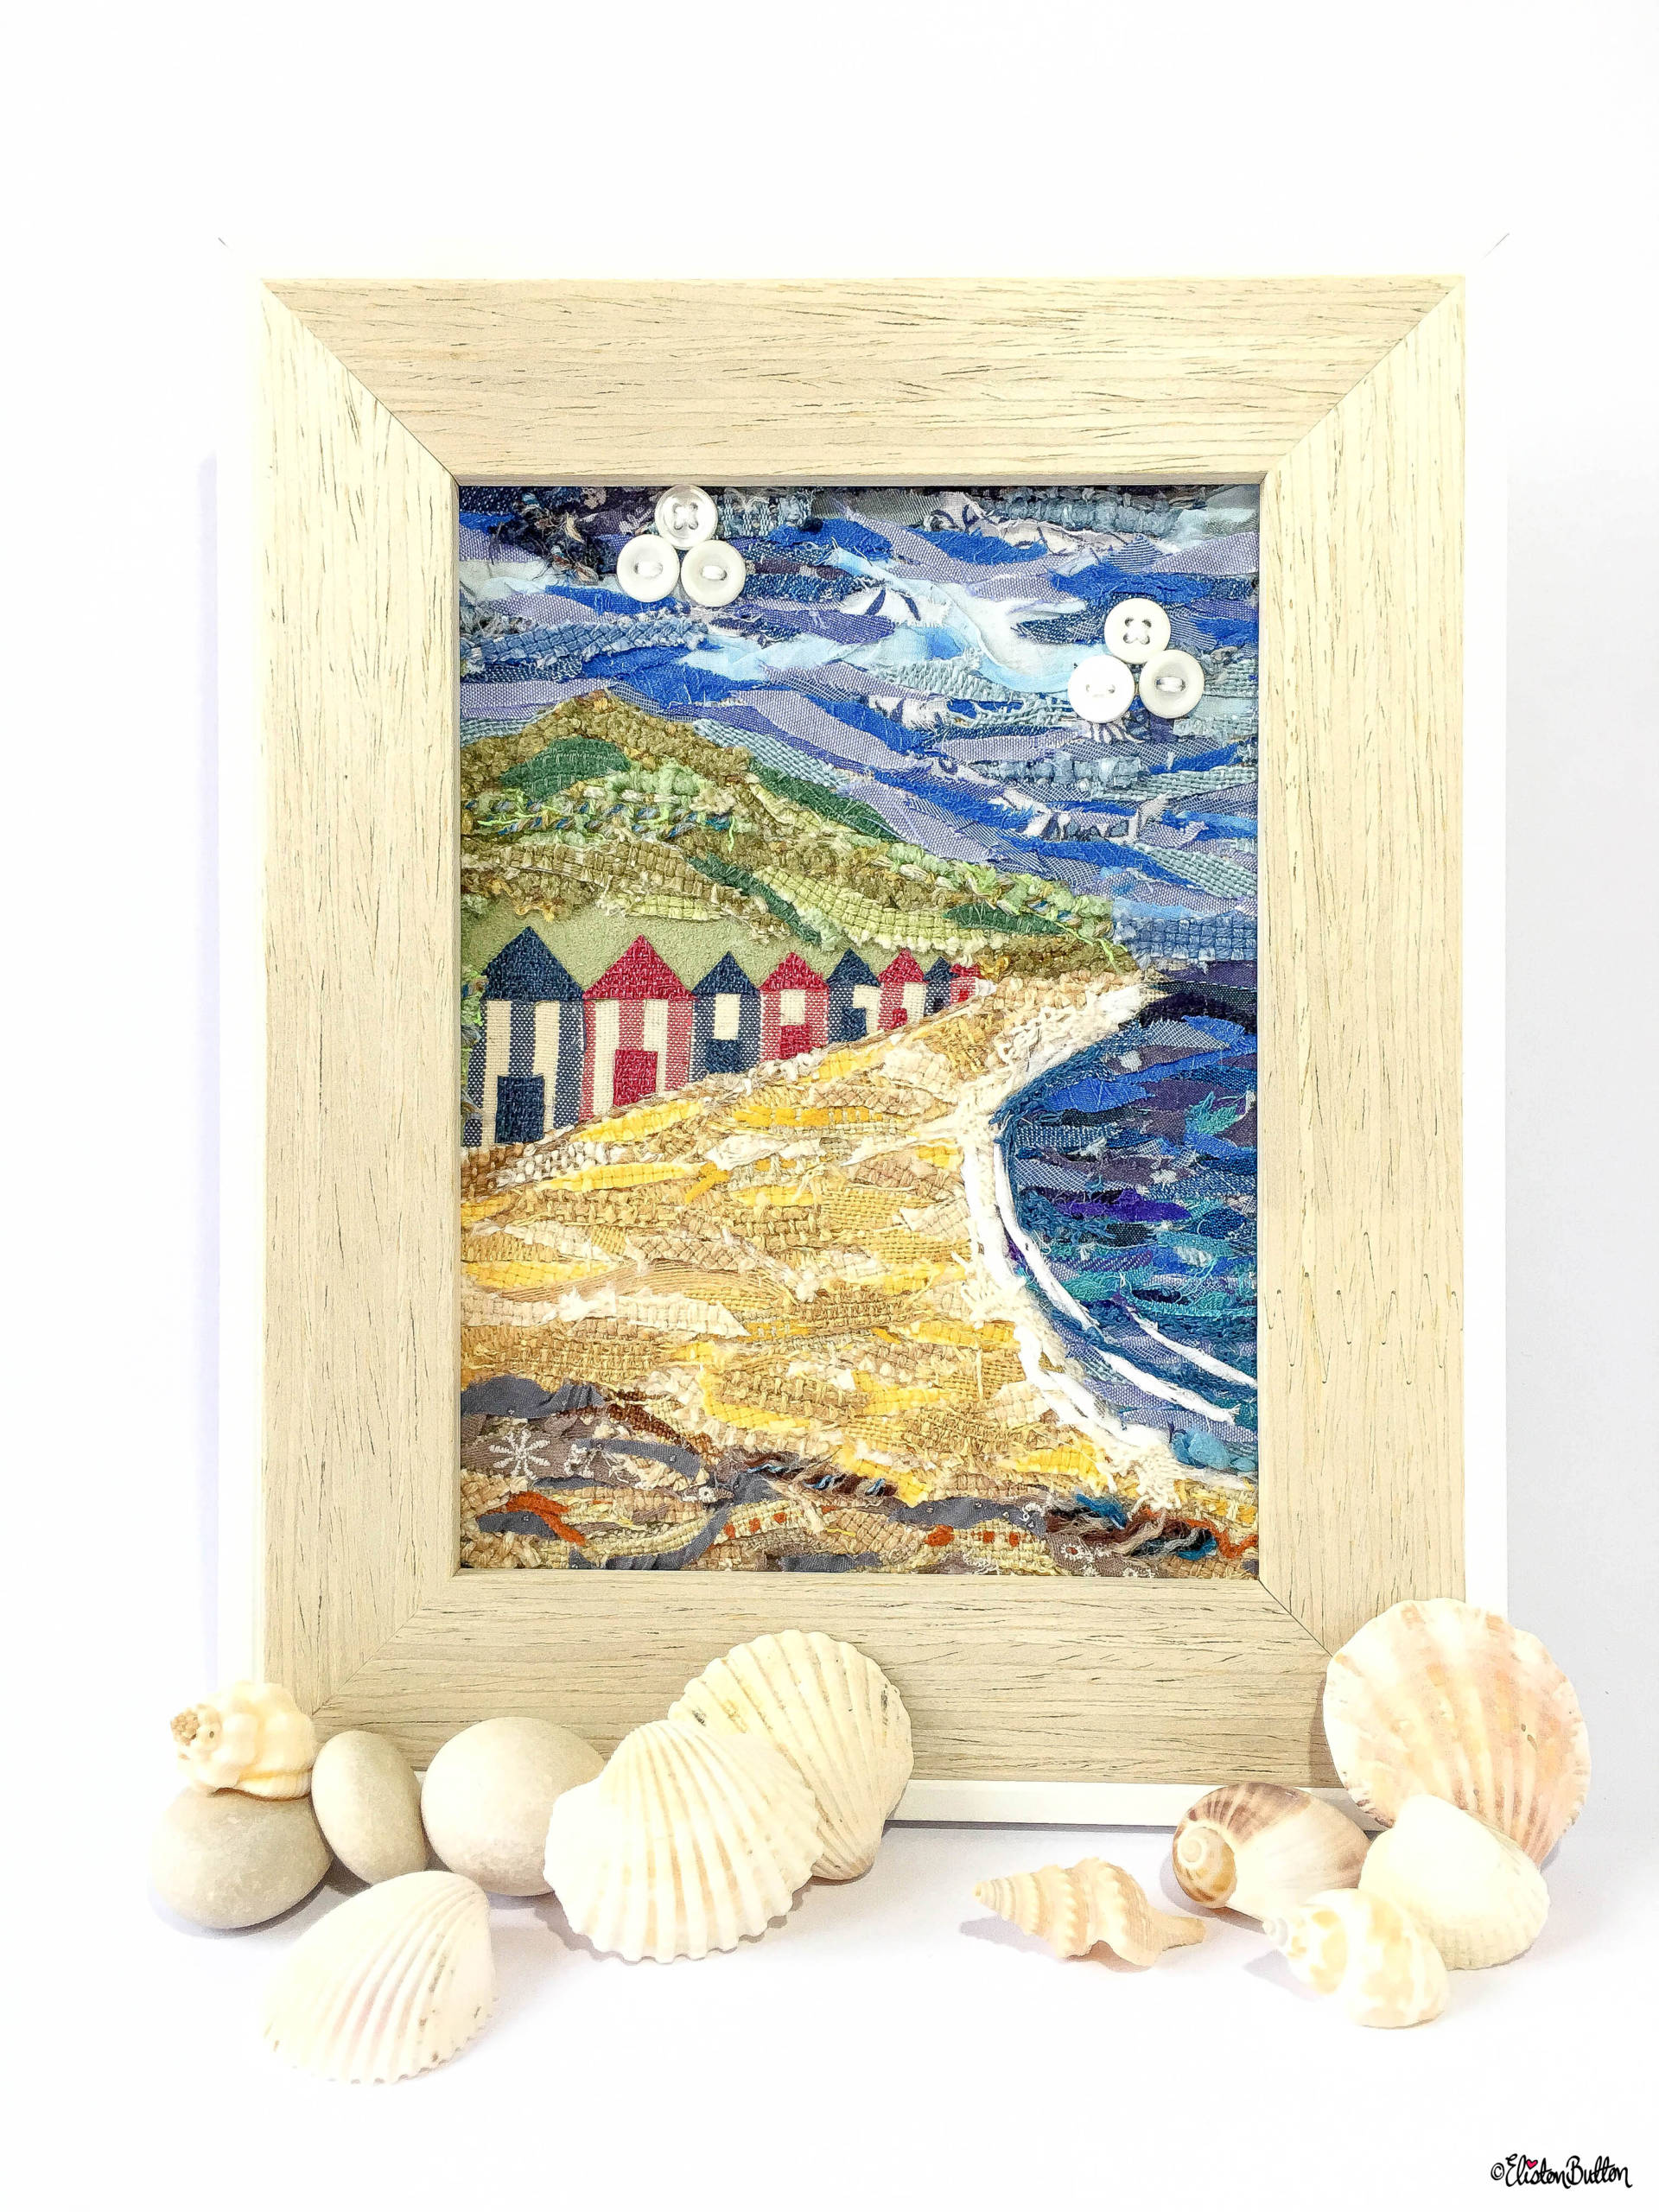 'Beach Huts by the Sea' Original Seaside Fabric Collage by Eliston Button - Create 30 – No. 16 & 17 – Seaside Fabric Collages at www.elistonbutton.com - Eliston Button - That Crafty Kid – Art, Design, Craft & Adventure.